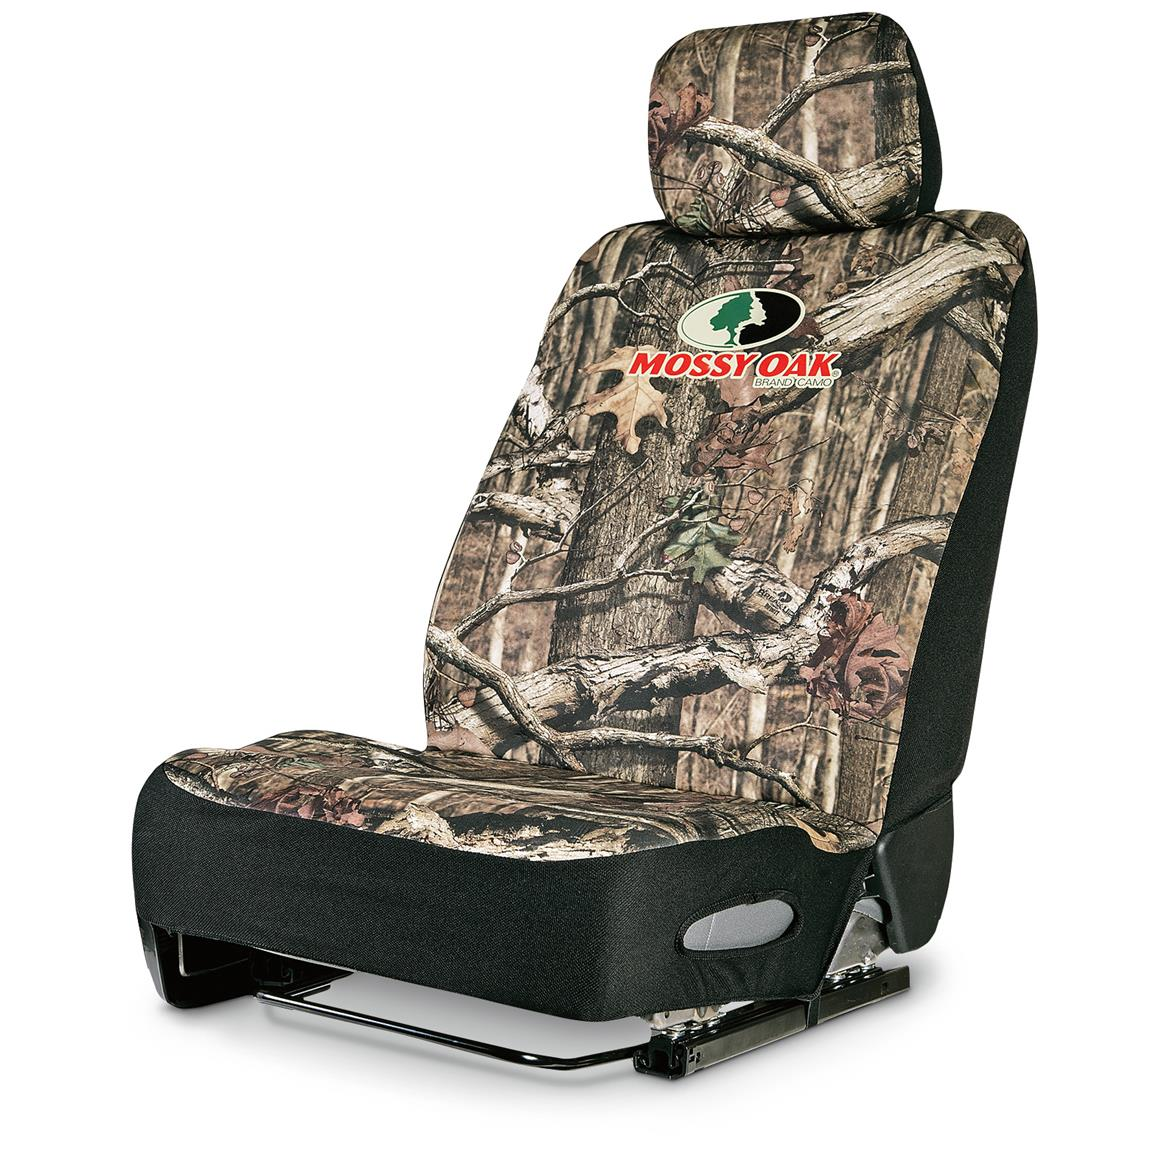 Neoprene Universal Low-back Camo Seat Cover, Mossy Oak